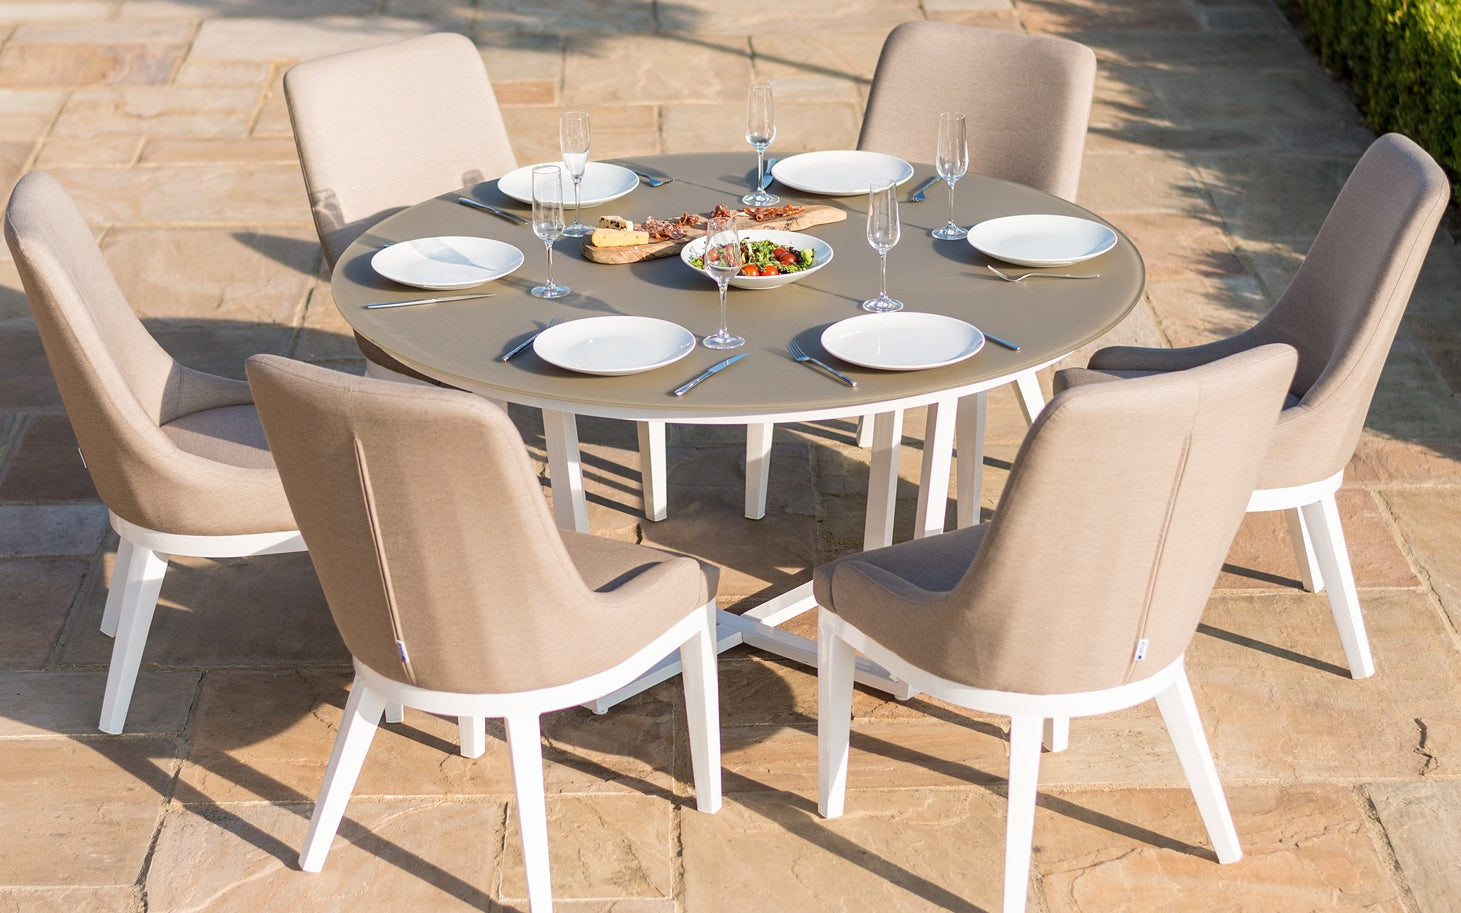 Invest in high-quality garden furniture - 8 Outdoor Dining Ideas - LuxDeco Style Guide